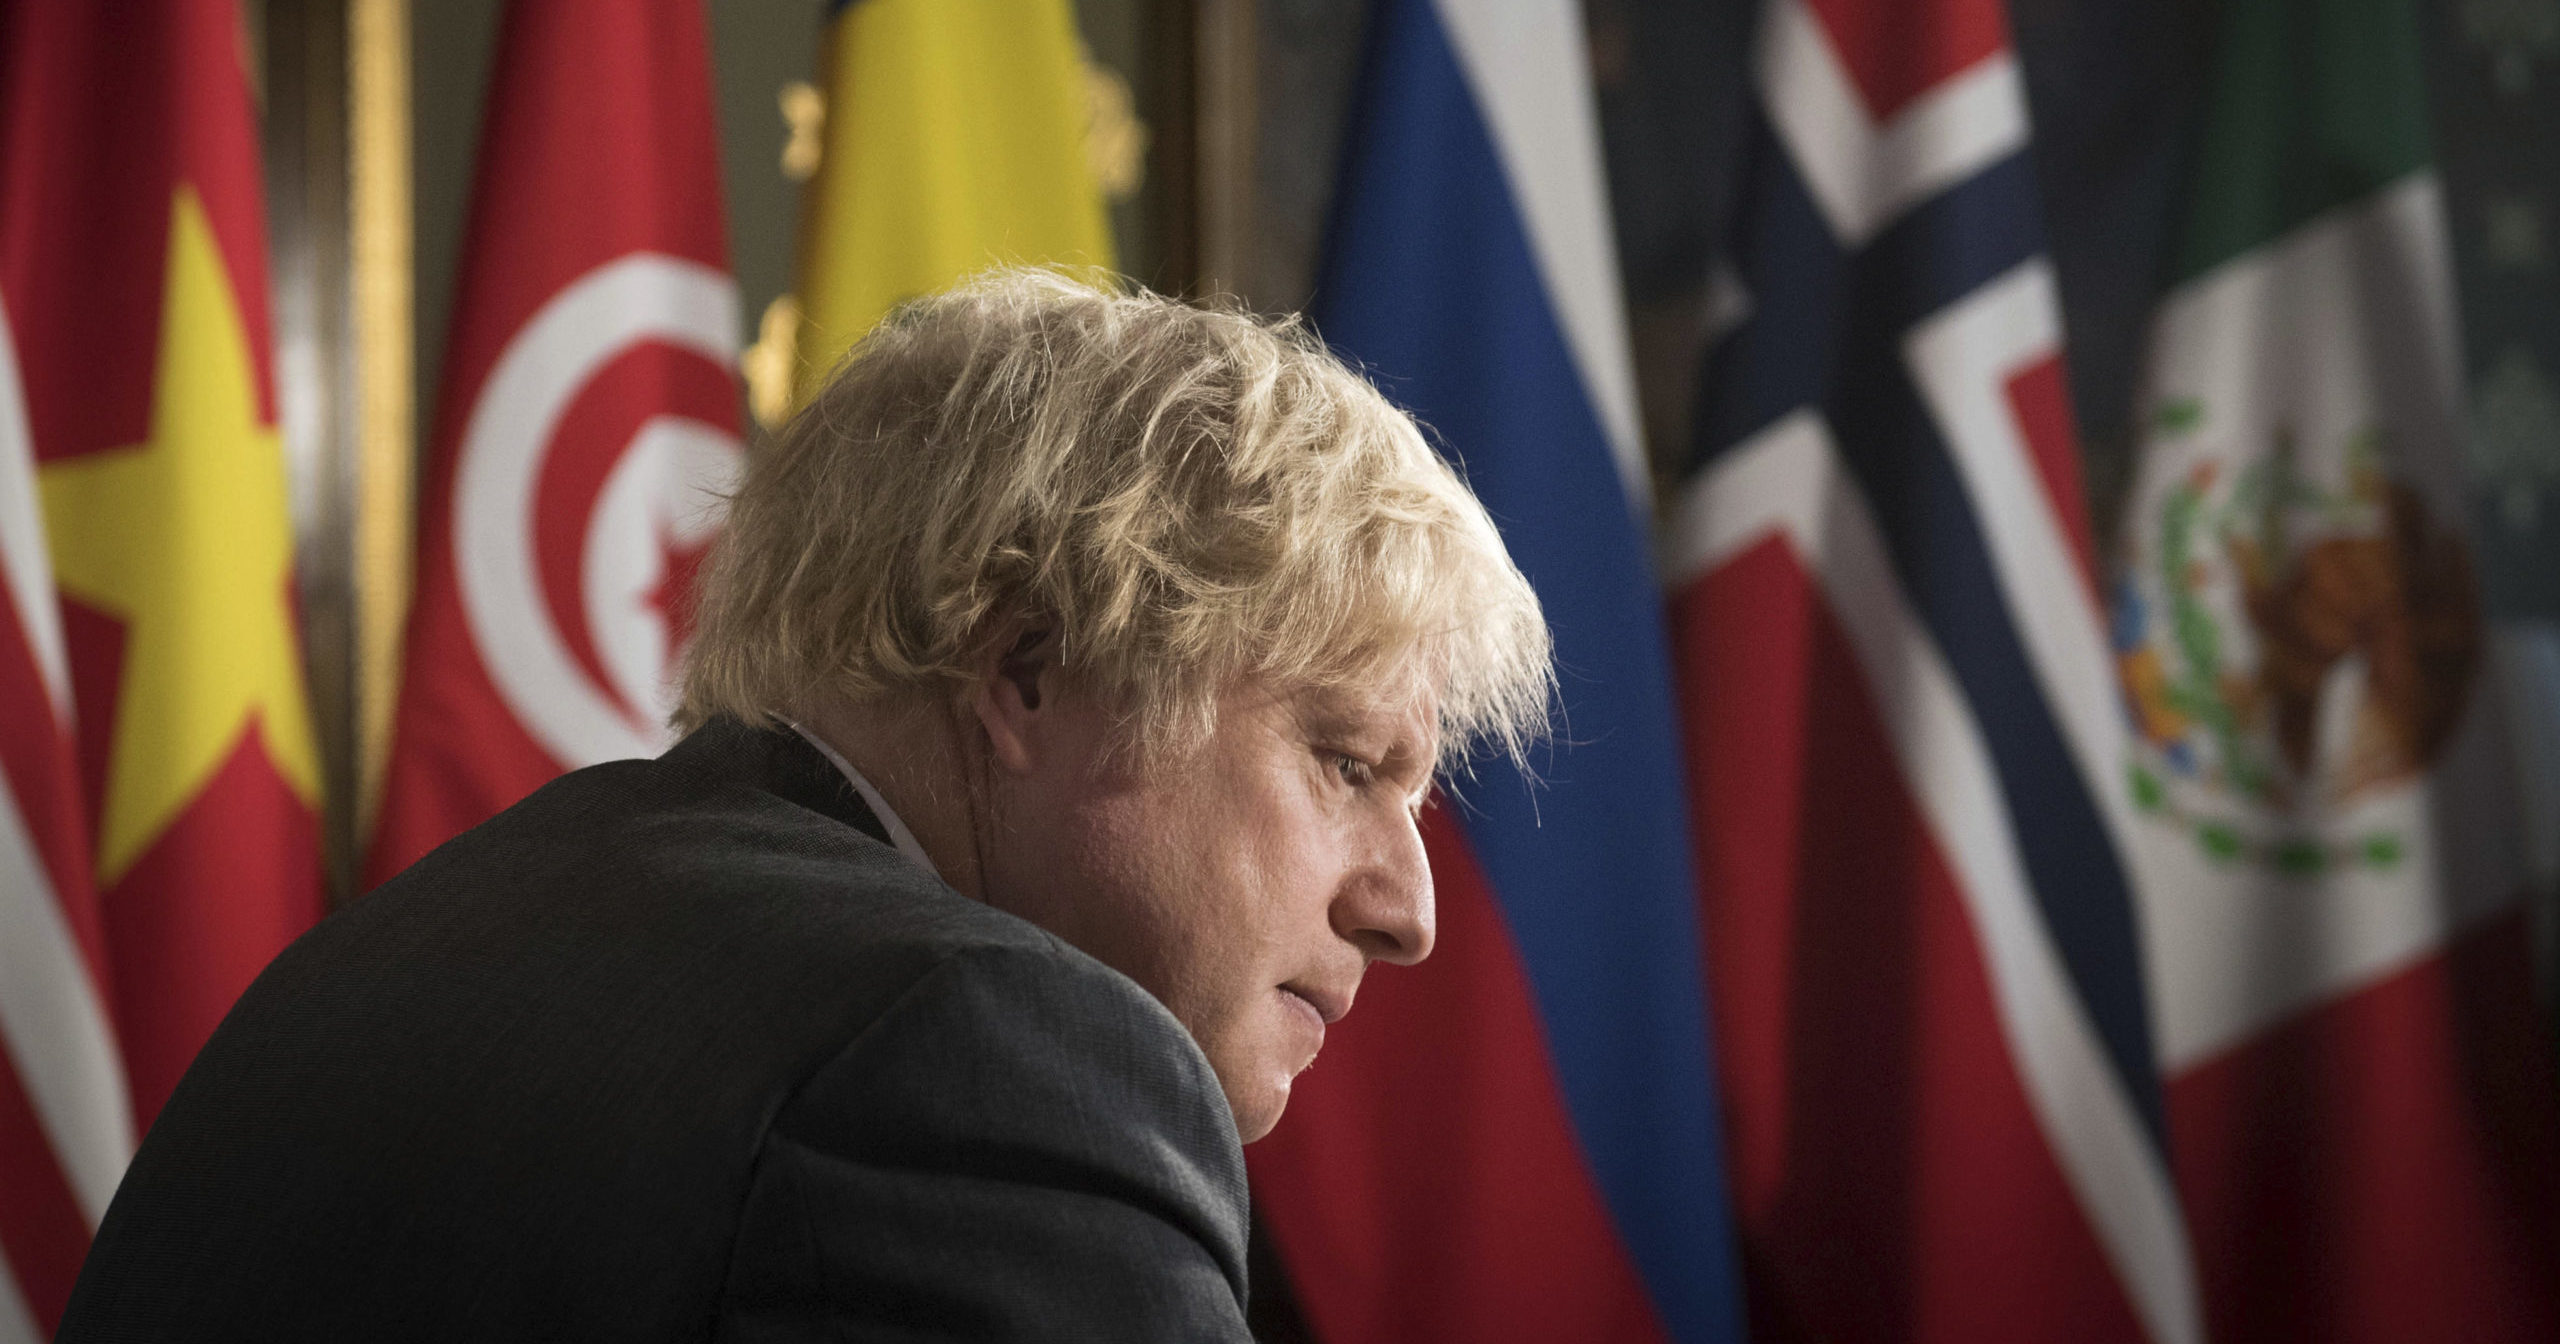 British Prime Minister Boris Johnson chairs a session of the UN Security Council at the Foreign, Commonwealth and Development Office in London on Feb. 23, 2021.